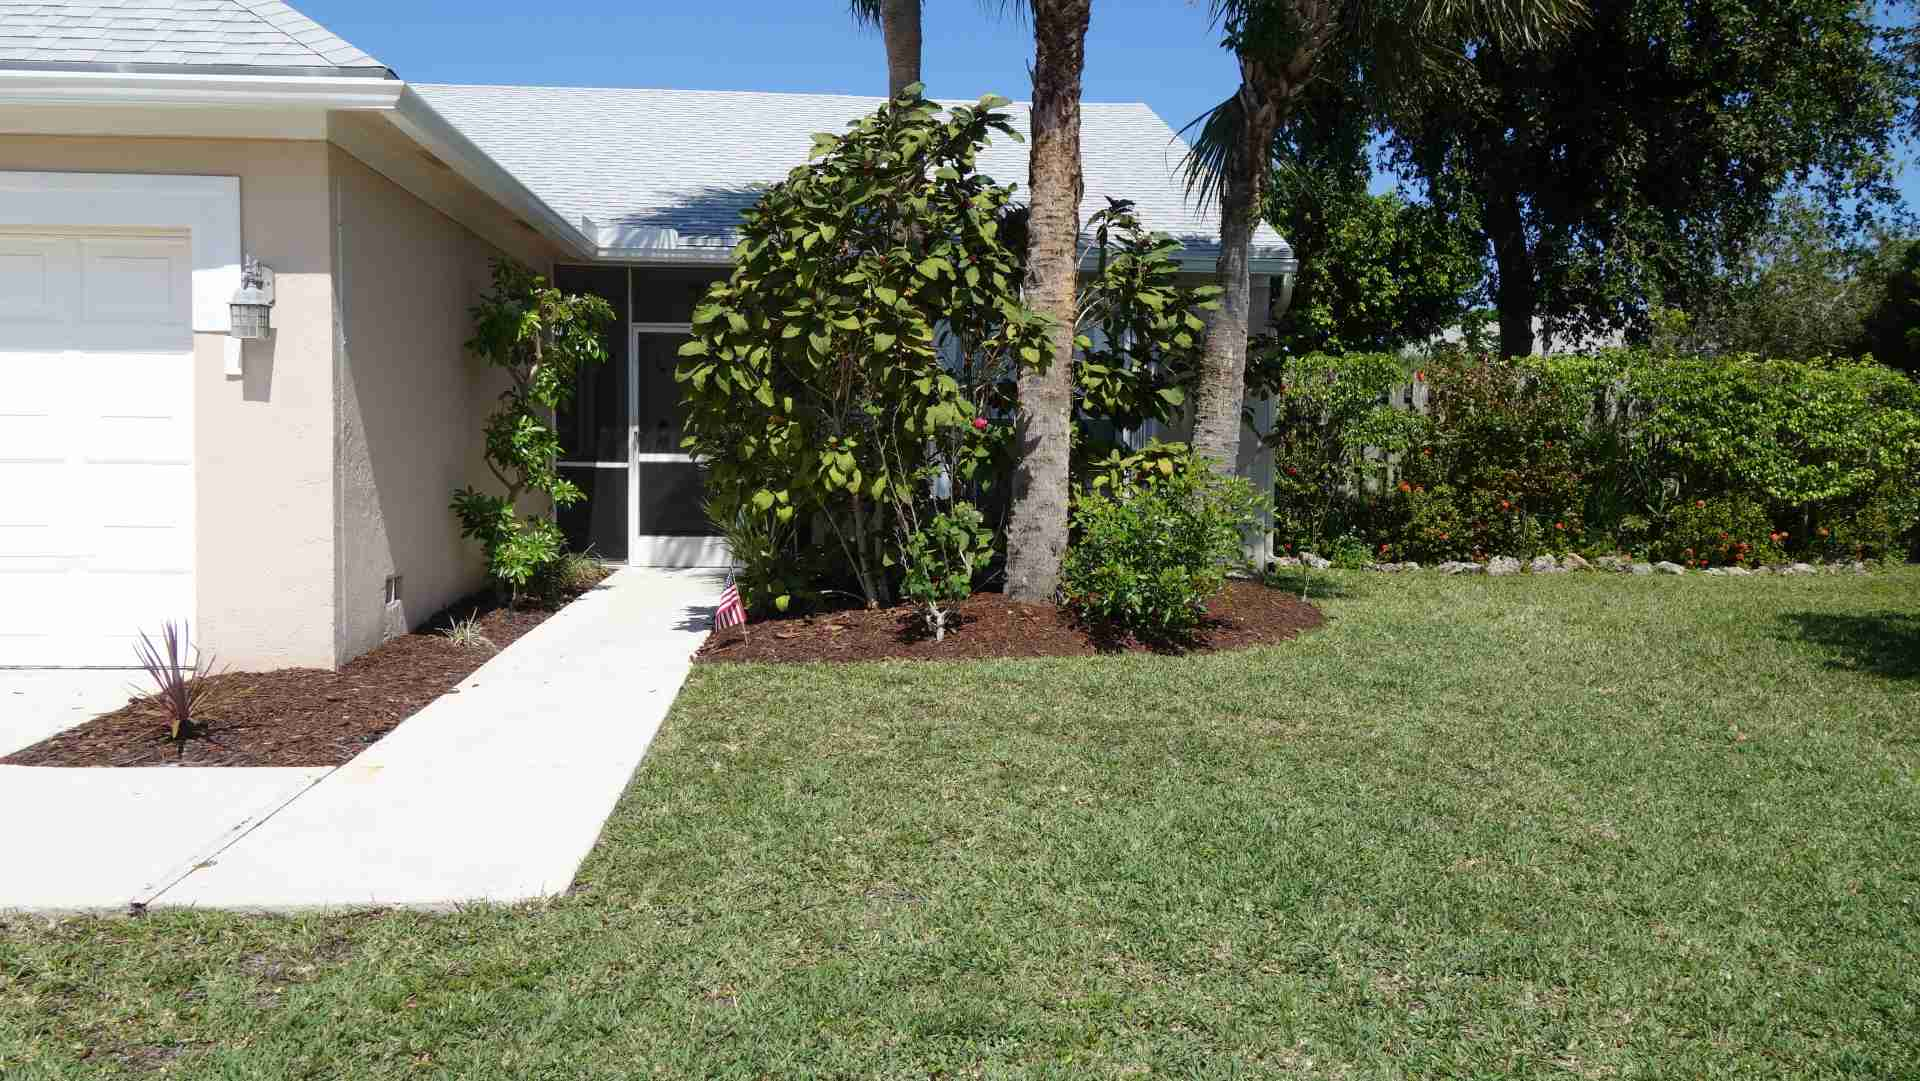 How Can You Improve Your Front Yard Landscaping?